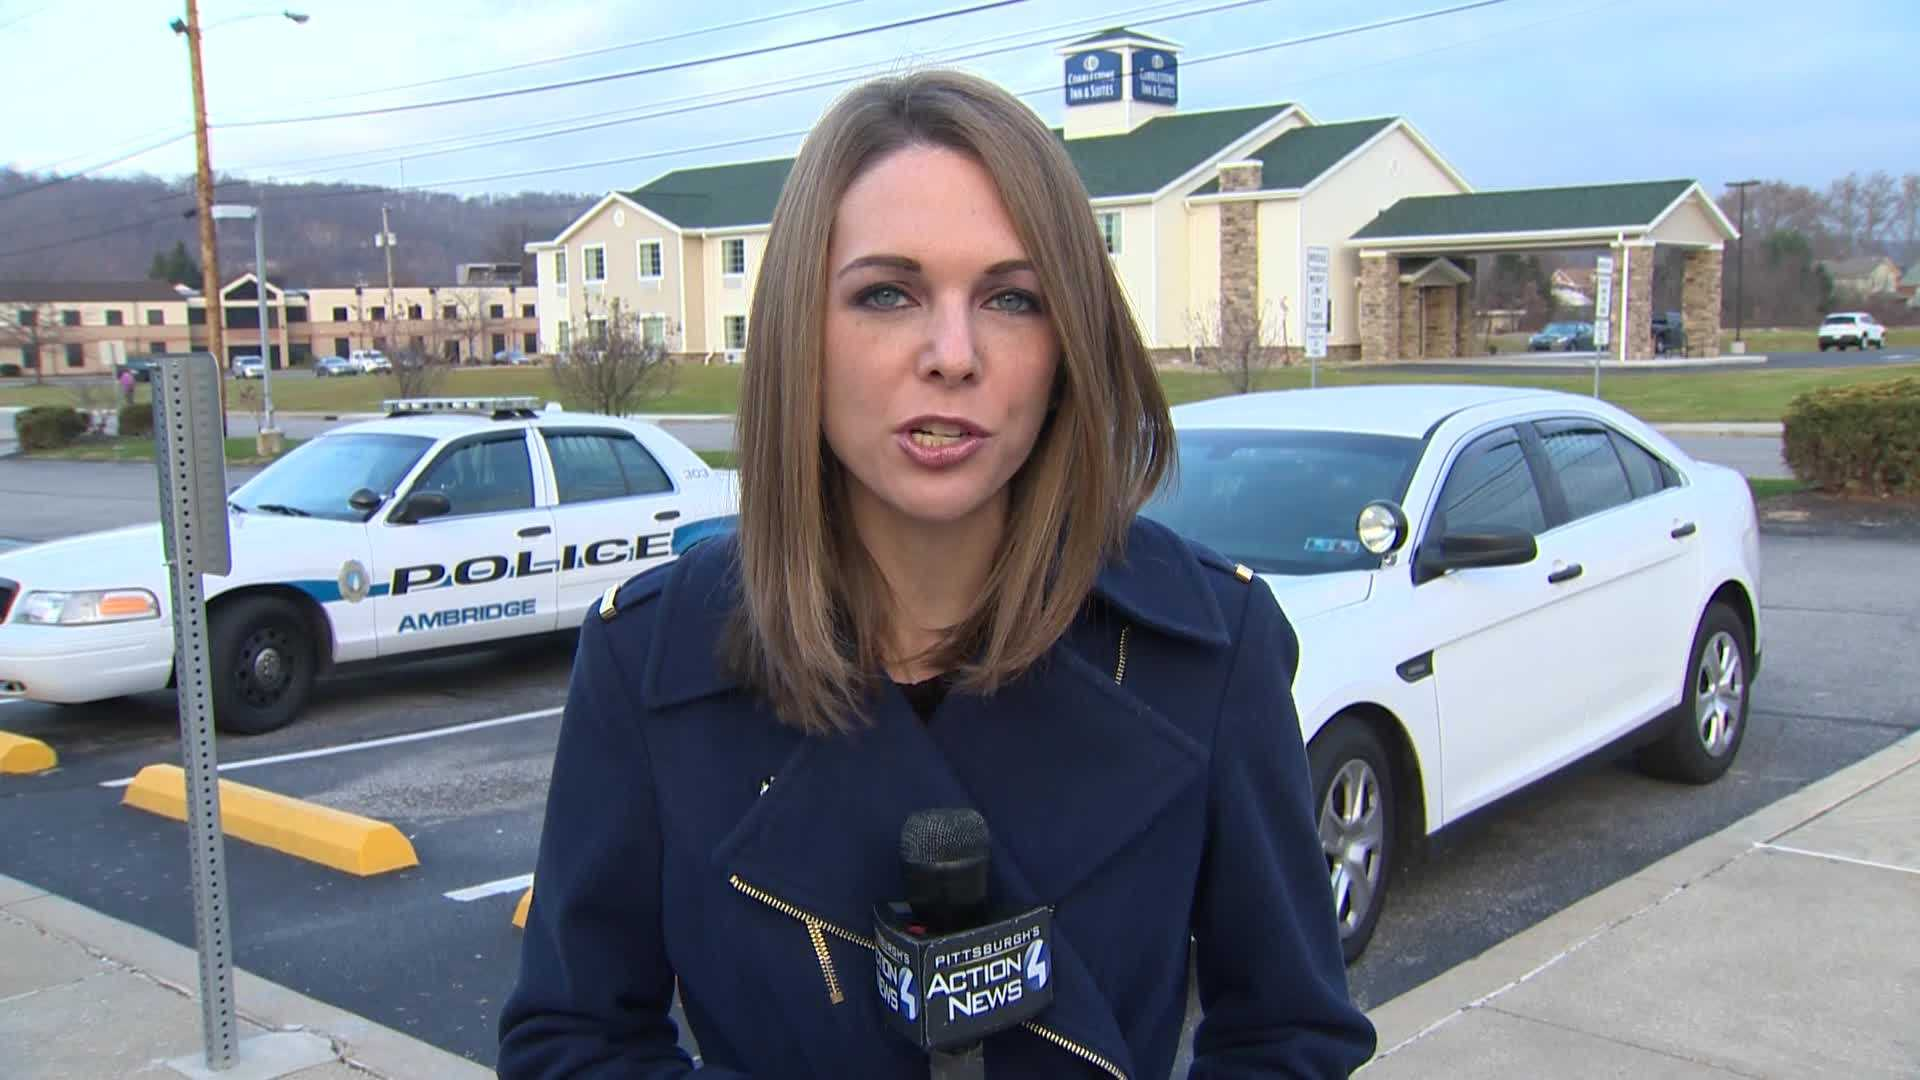 Pittsburgh's Action News 4 reporter Katelyn Sykes with brand new details after a shooting in Ambridge, Beaver County